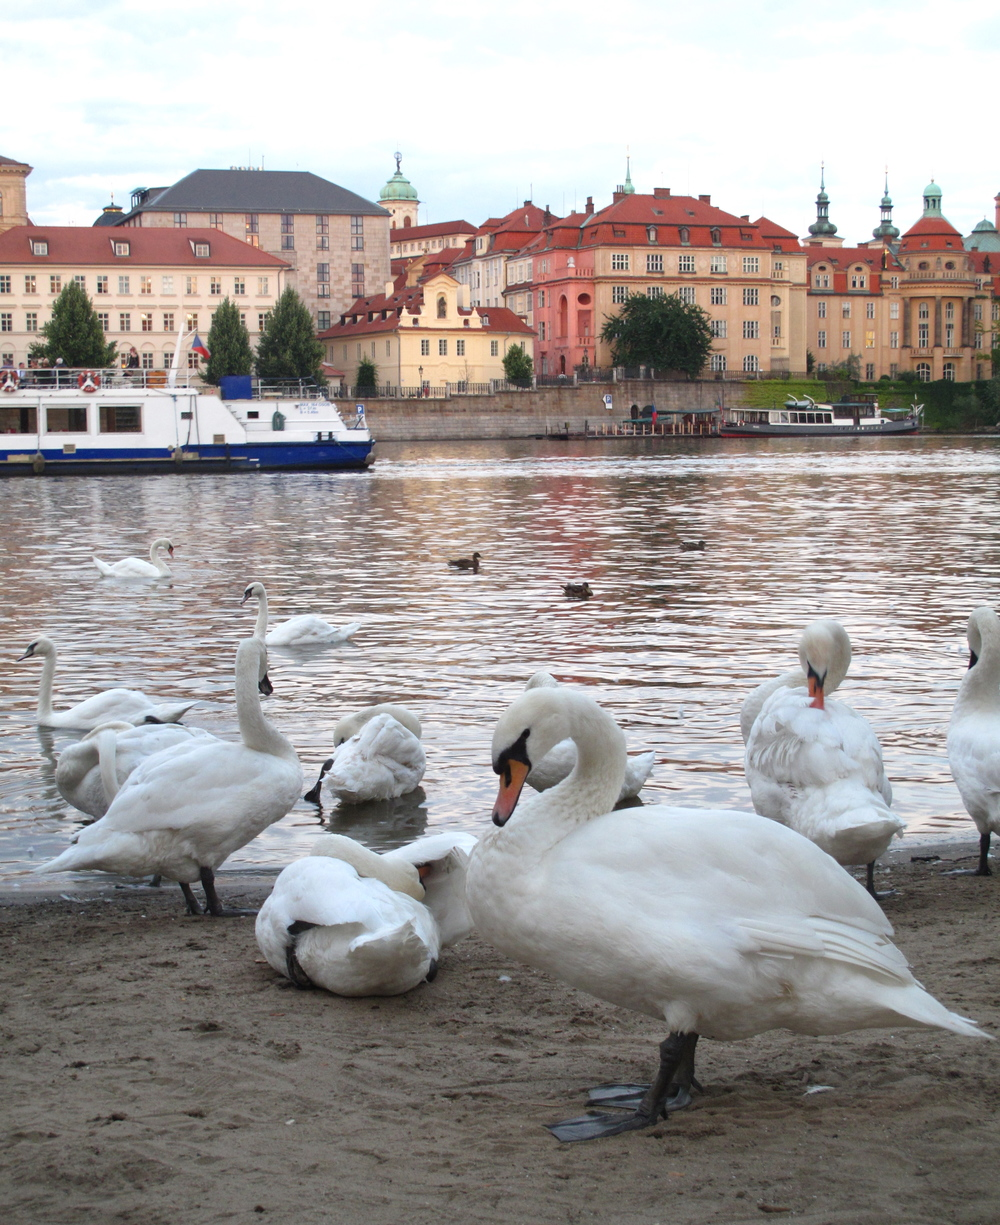 Swans by the Vltava river in Prague.